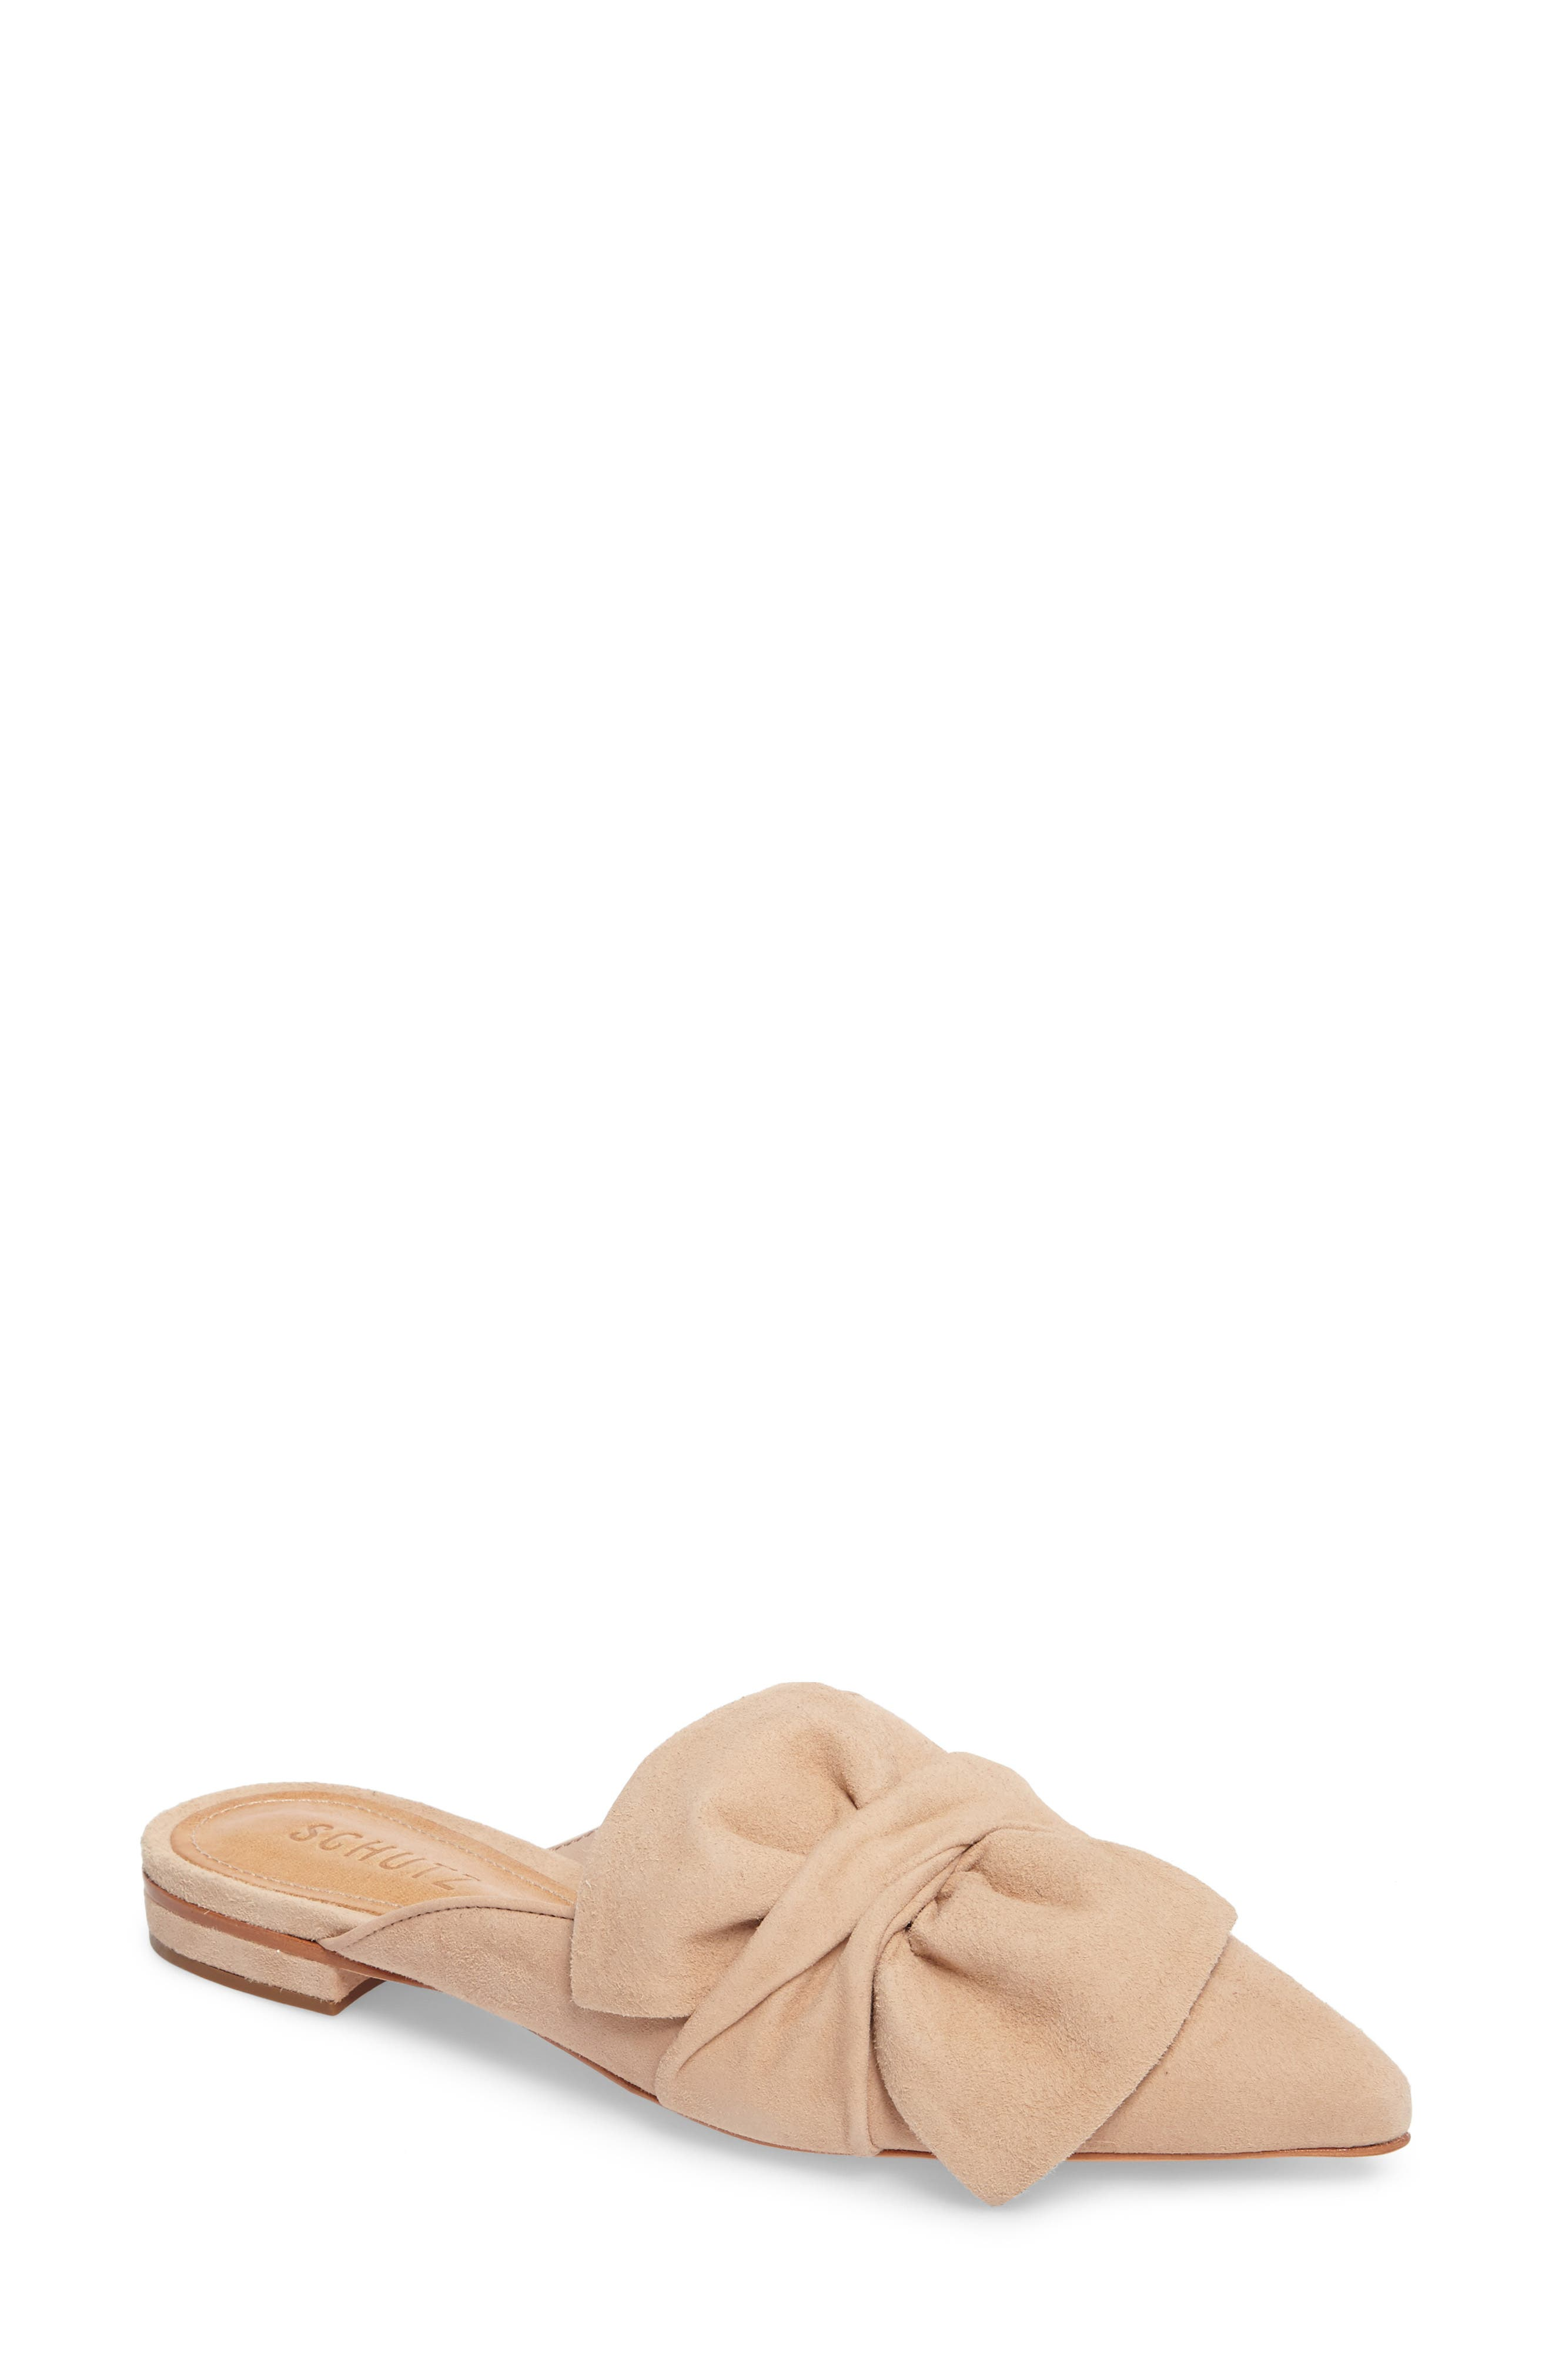 D'Ana Knotted Loafer Mule,                         Main,                         color, AMENDOA NUBUCK LEATHER